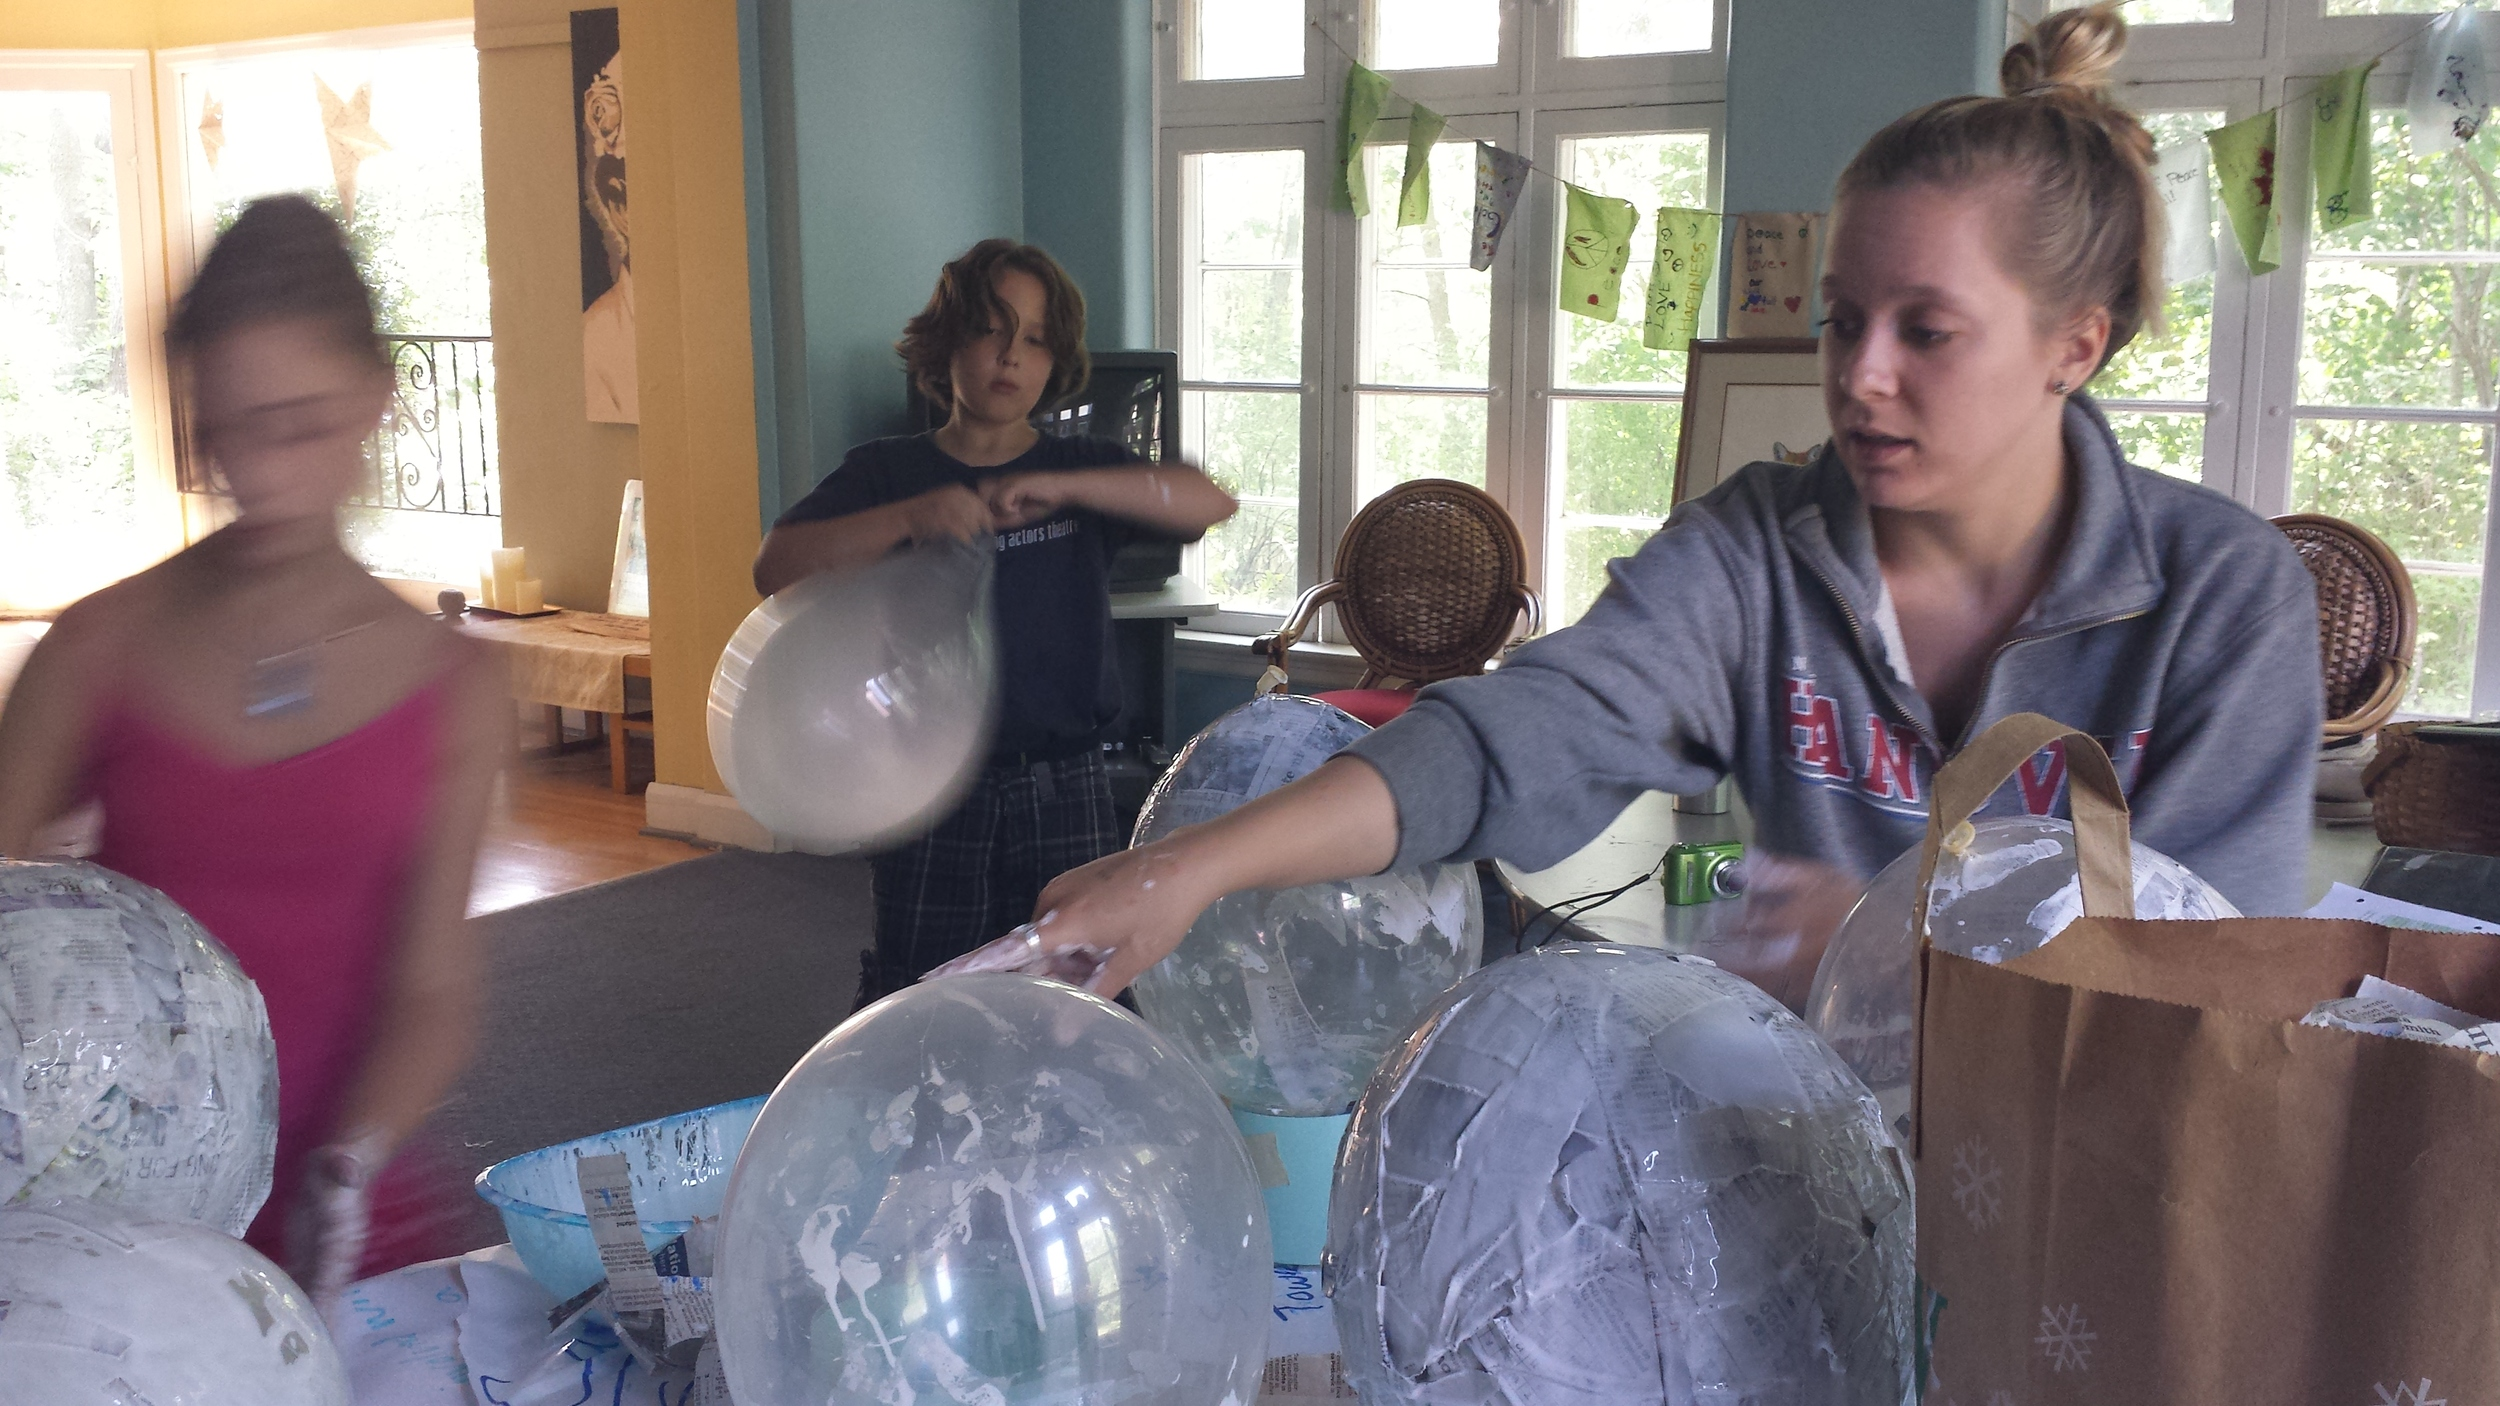 Author Alexis Litz, left, works with campers on a project that involved visualizing CO2: one pound of CO2 = the equivalent of 28 balloons.